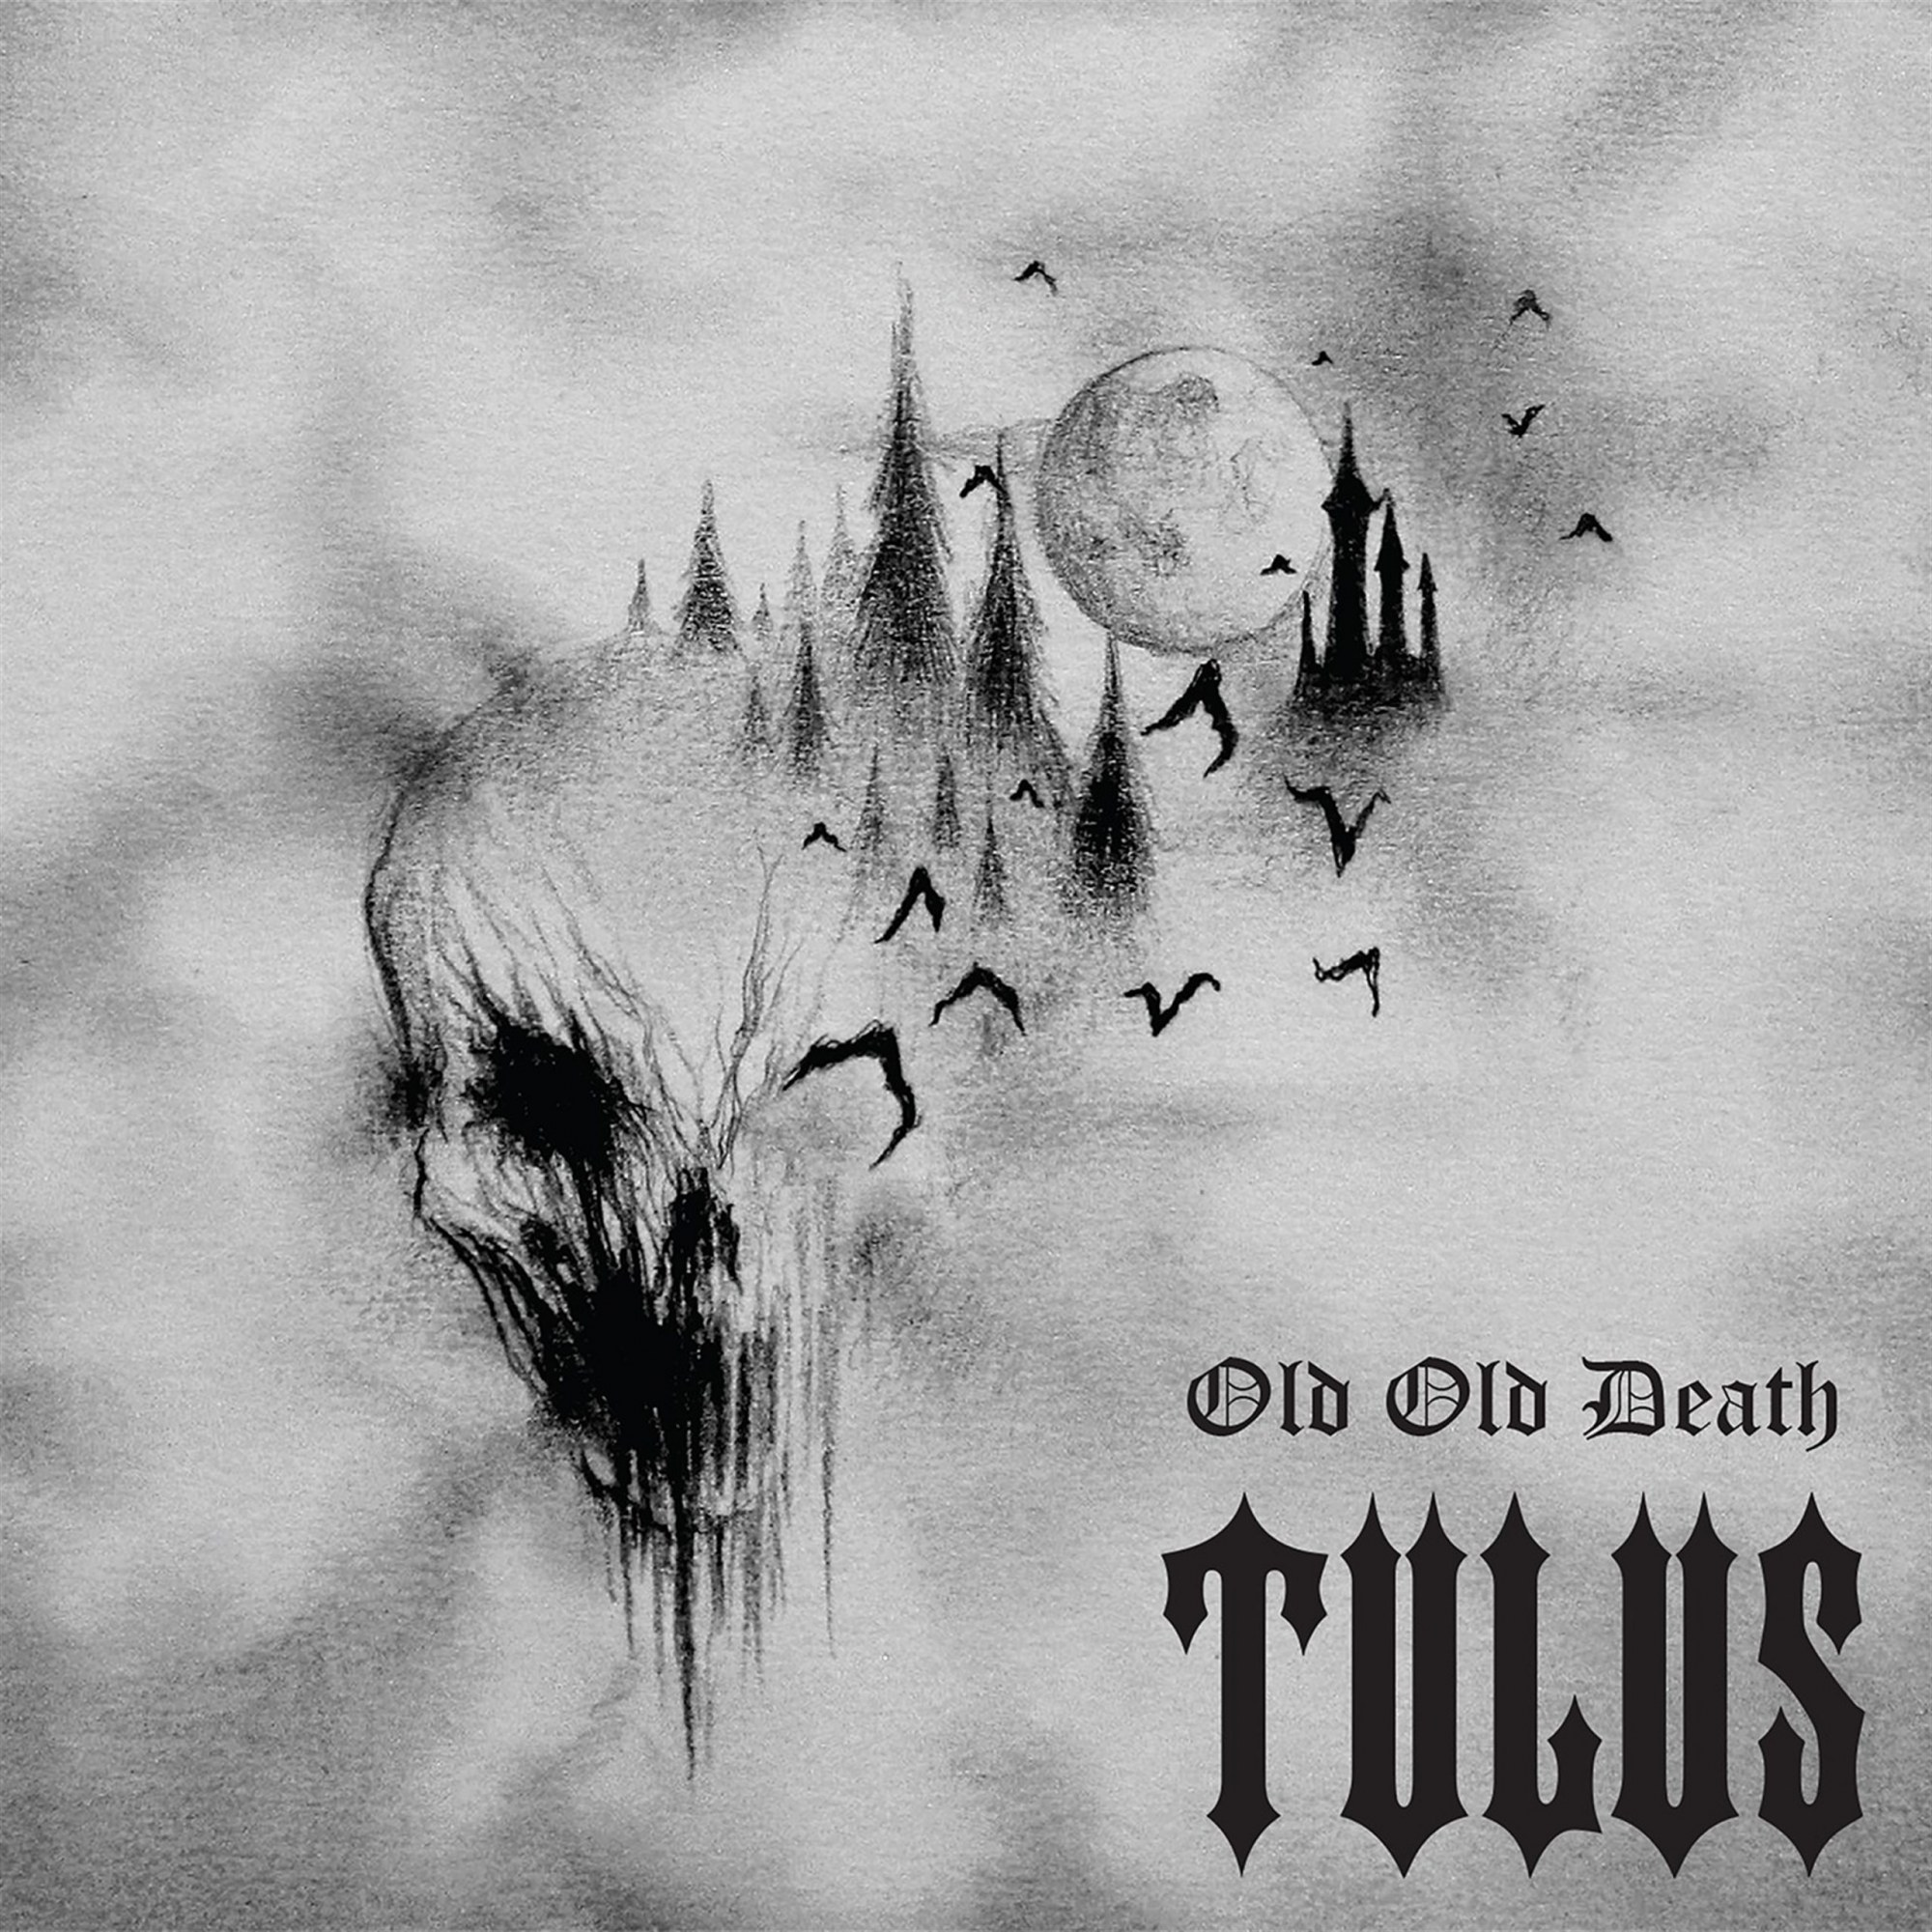 Reviews for Tulus - Old Old Death